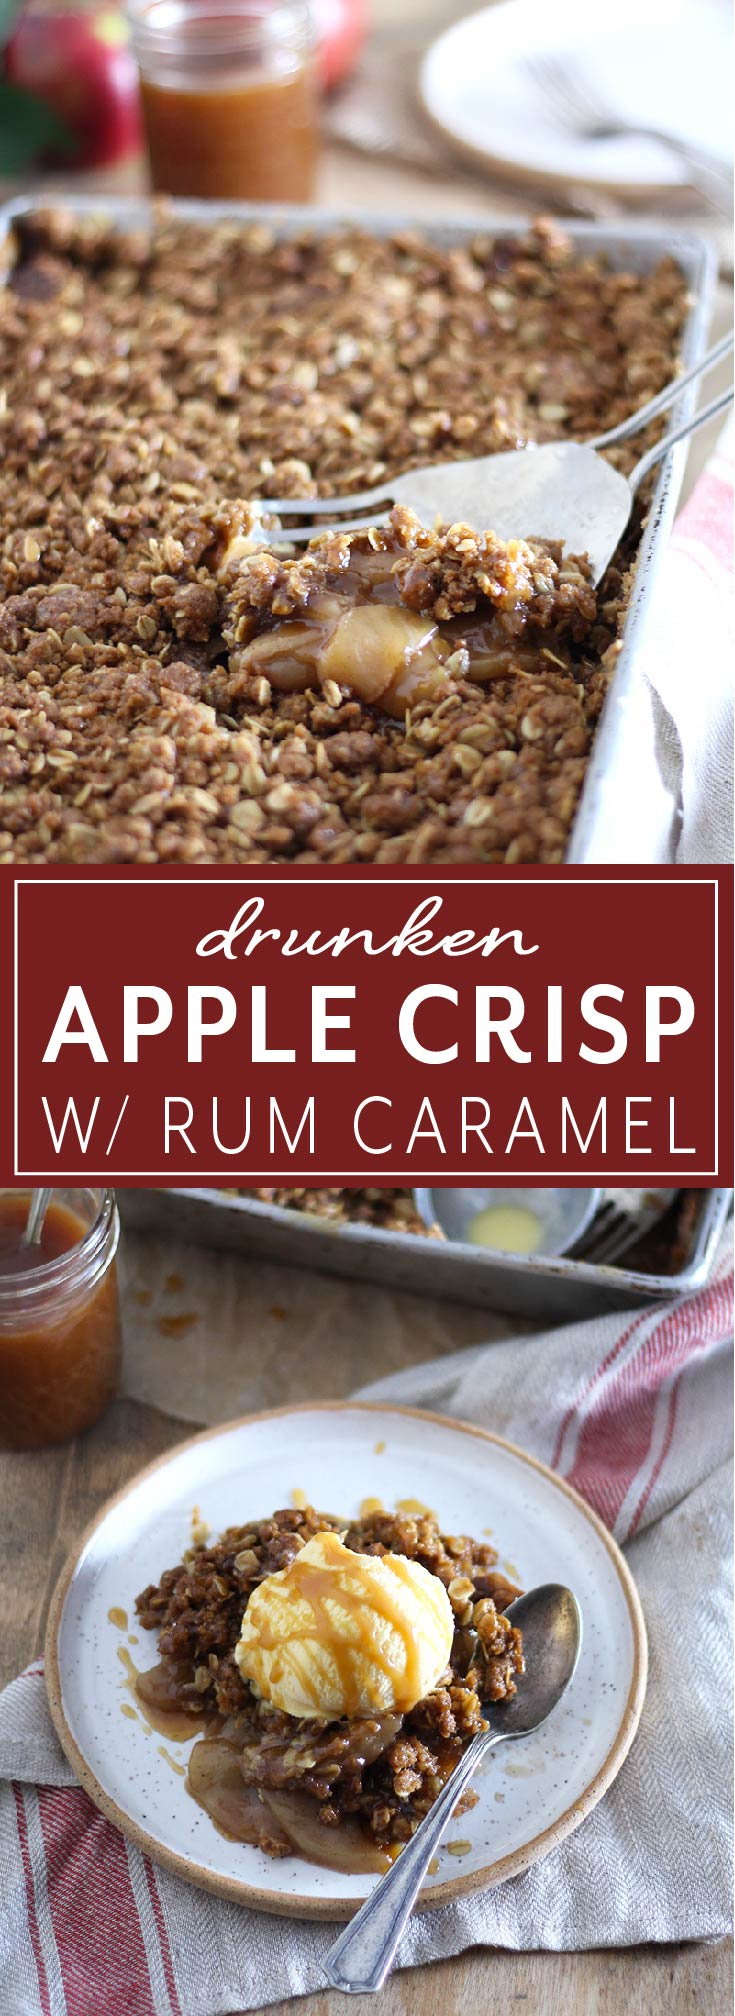 Drunken Apple Crispy with Rum Caramel